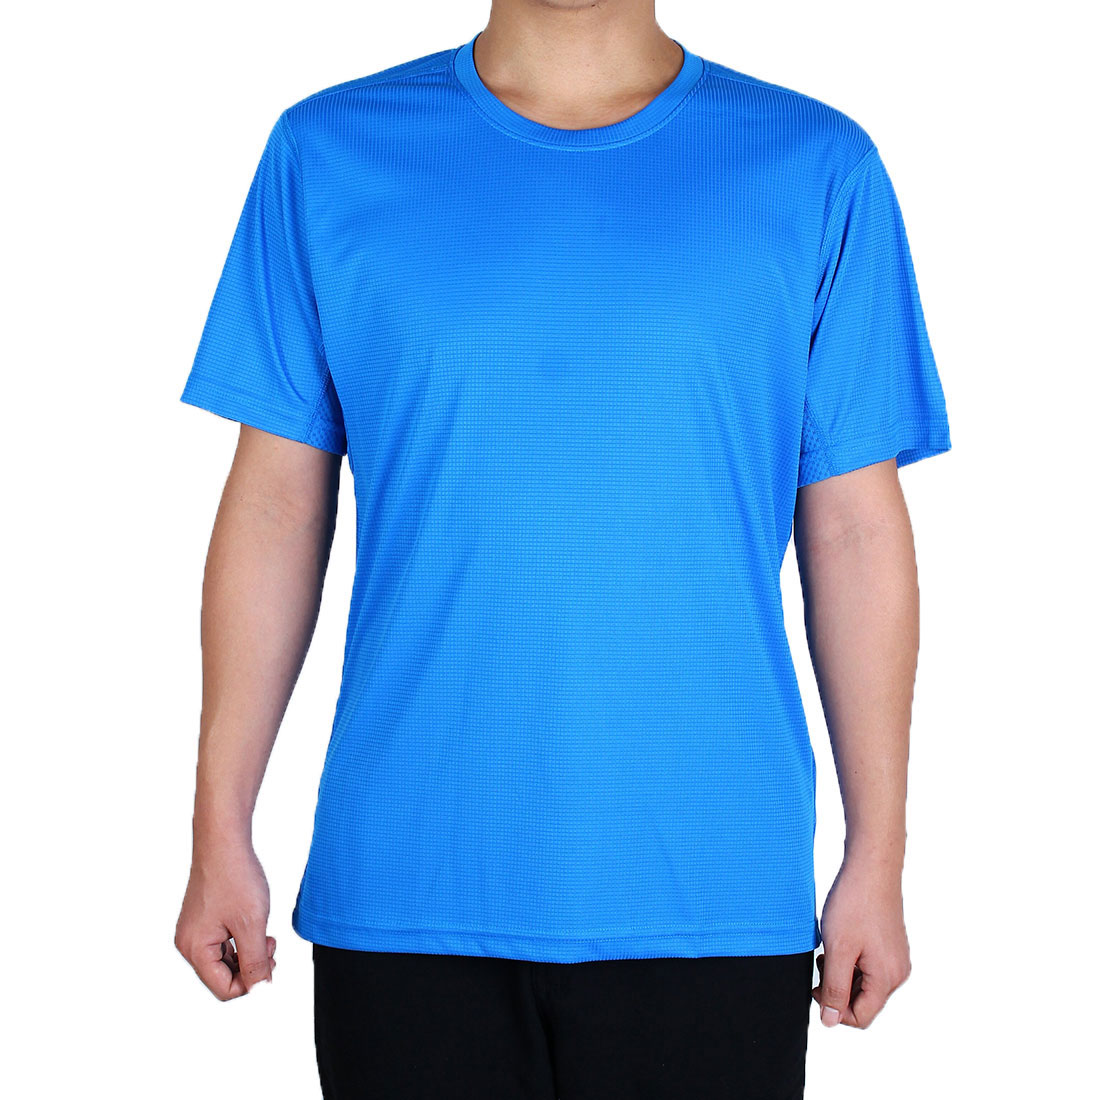 Men Breathable Short Sleeve Clothes Casual Wear Tee Golf Sports T-shirt Blue L